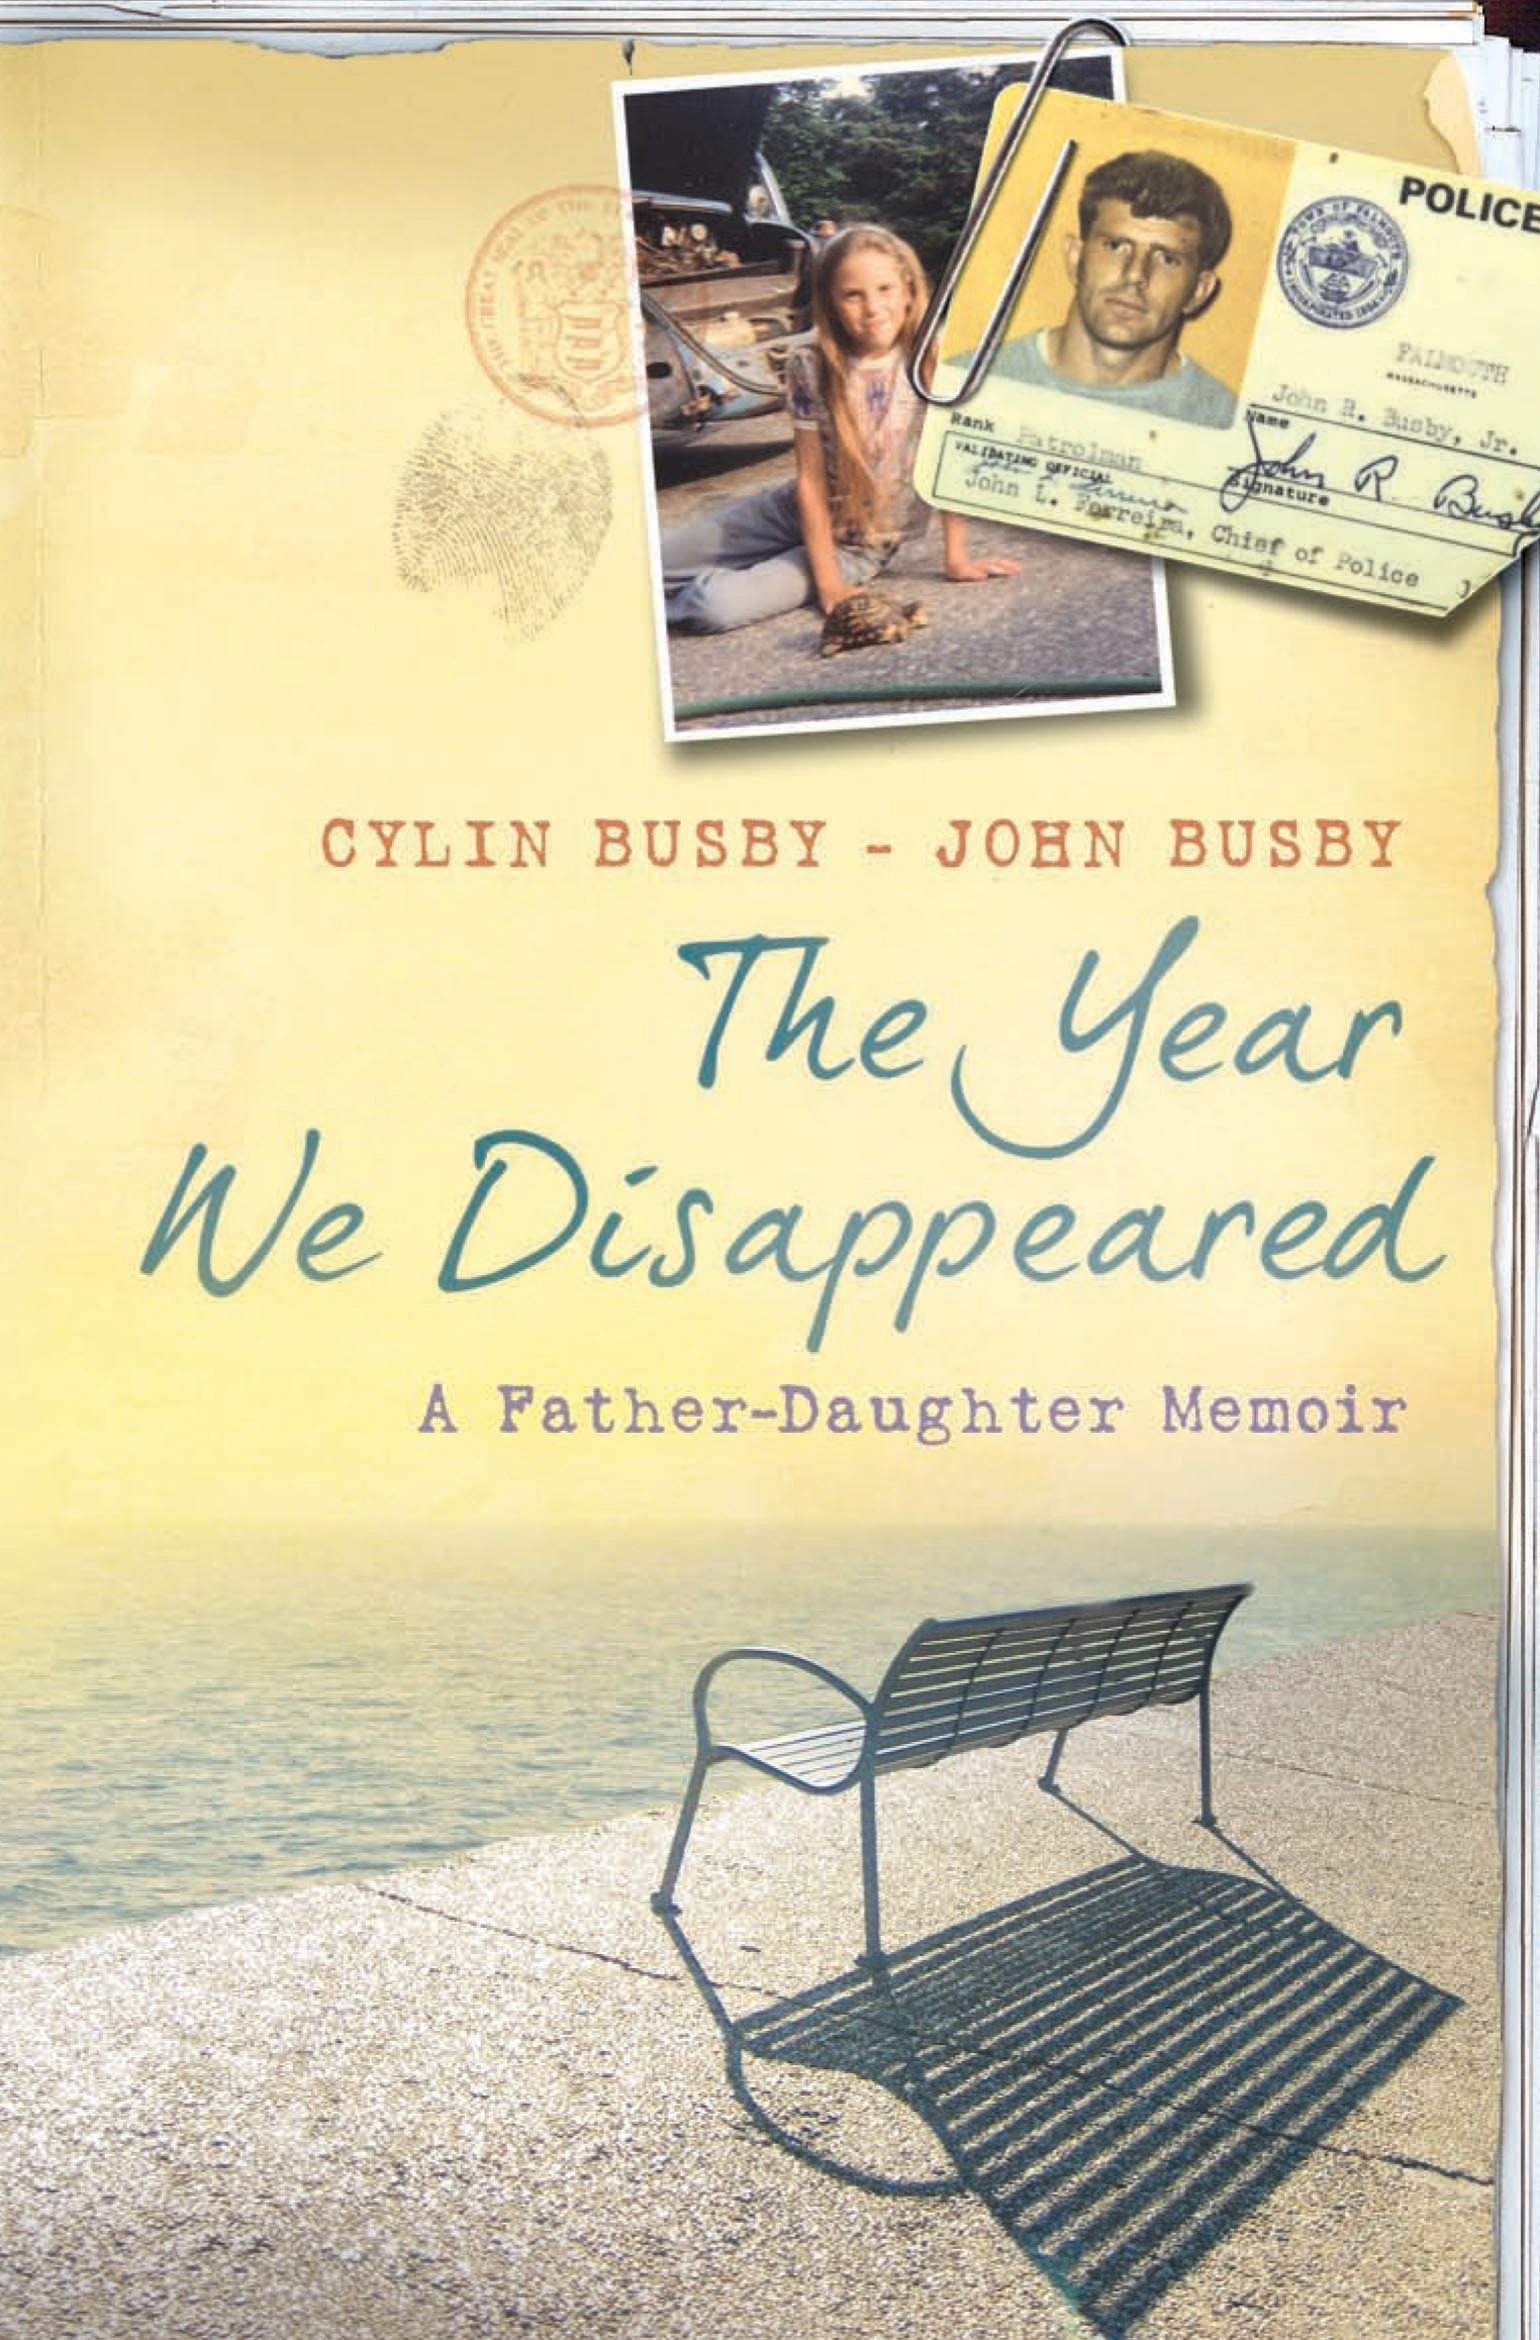 The Year We Disappeared A Father - Daughter Memoir